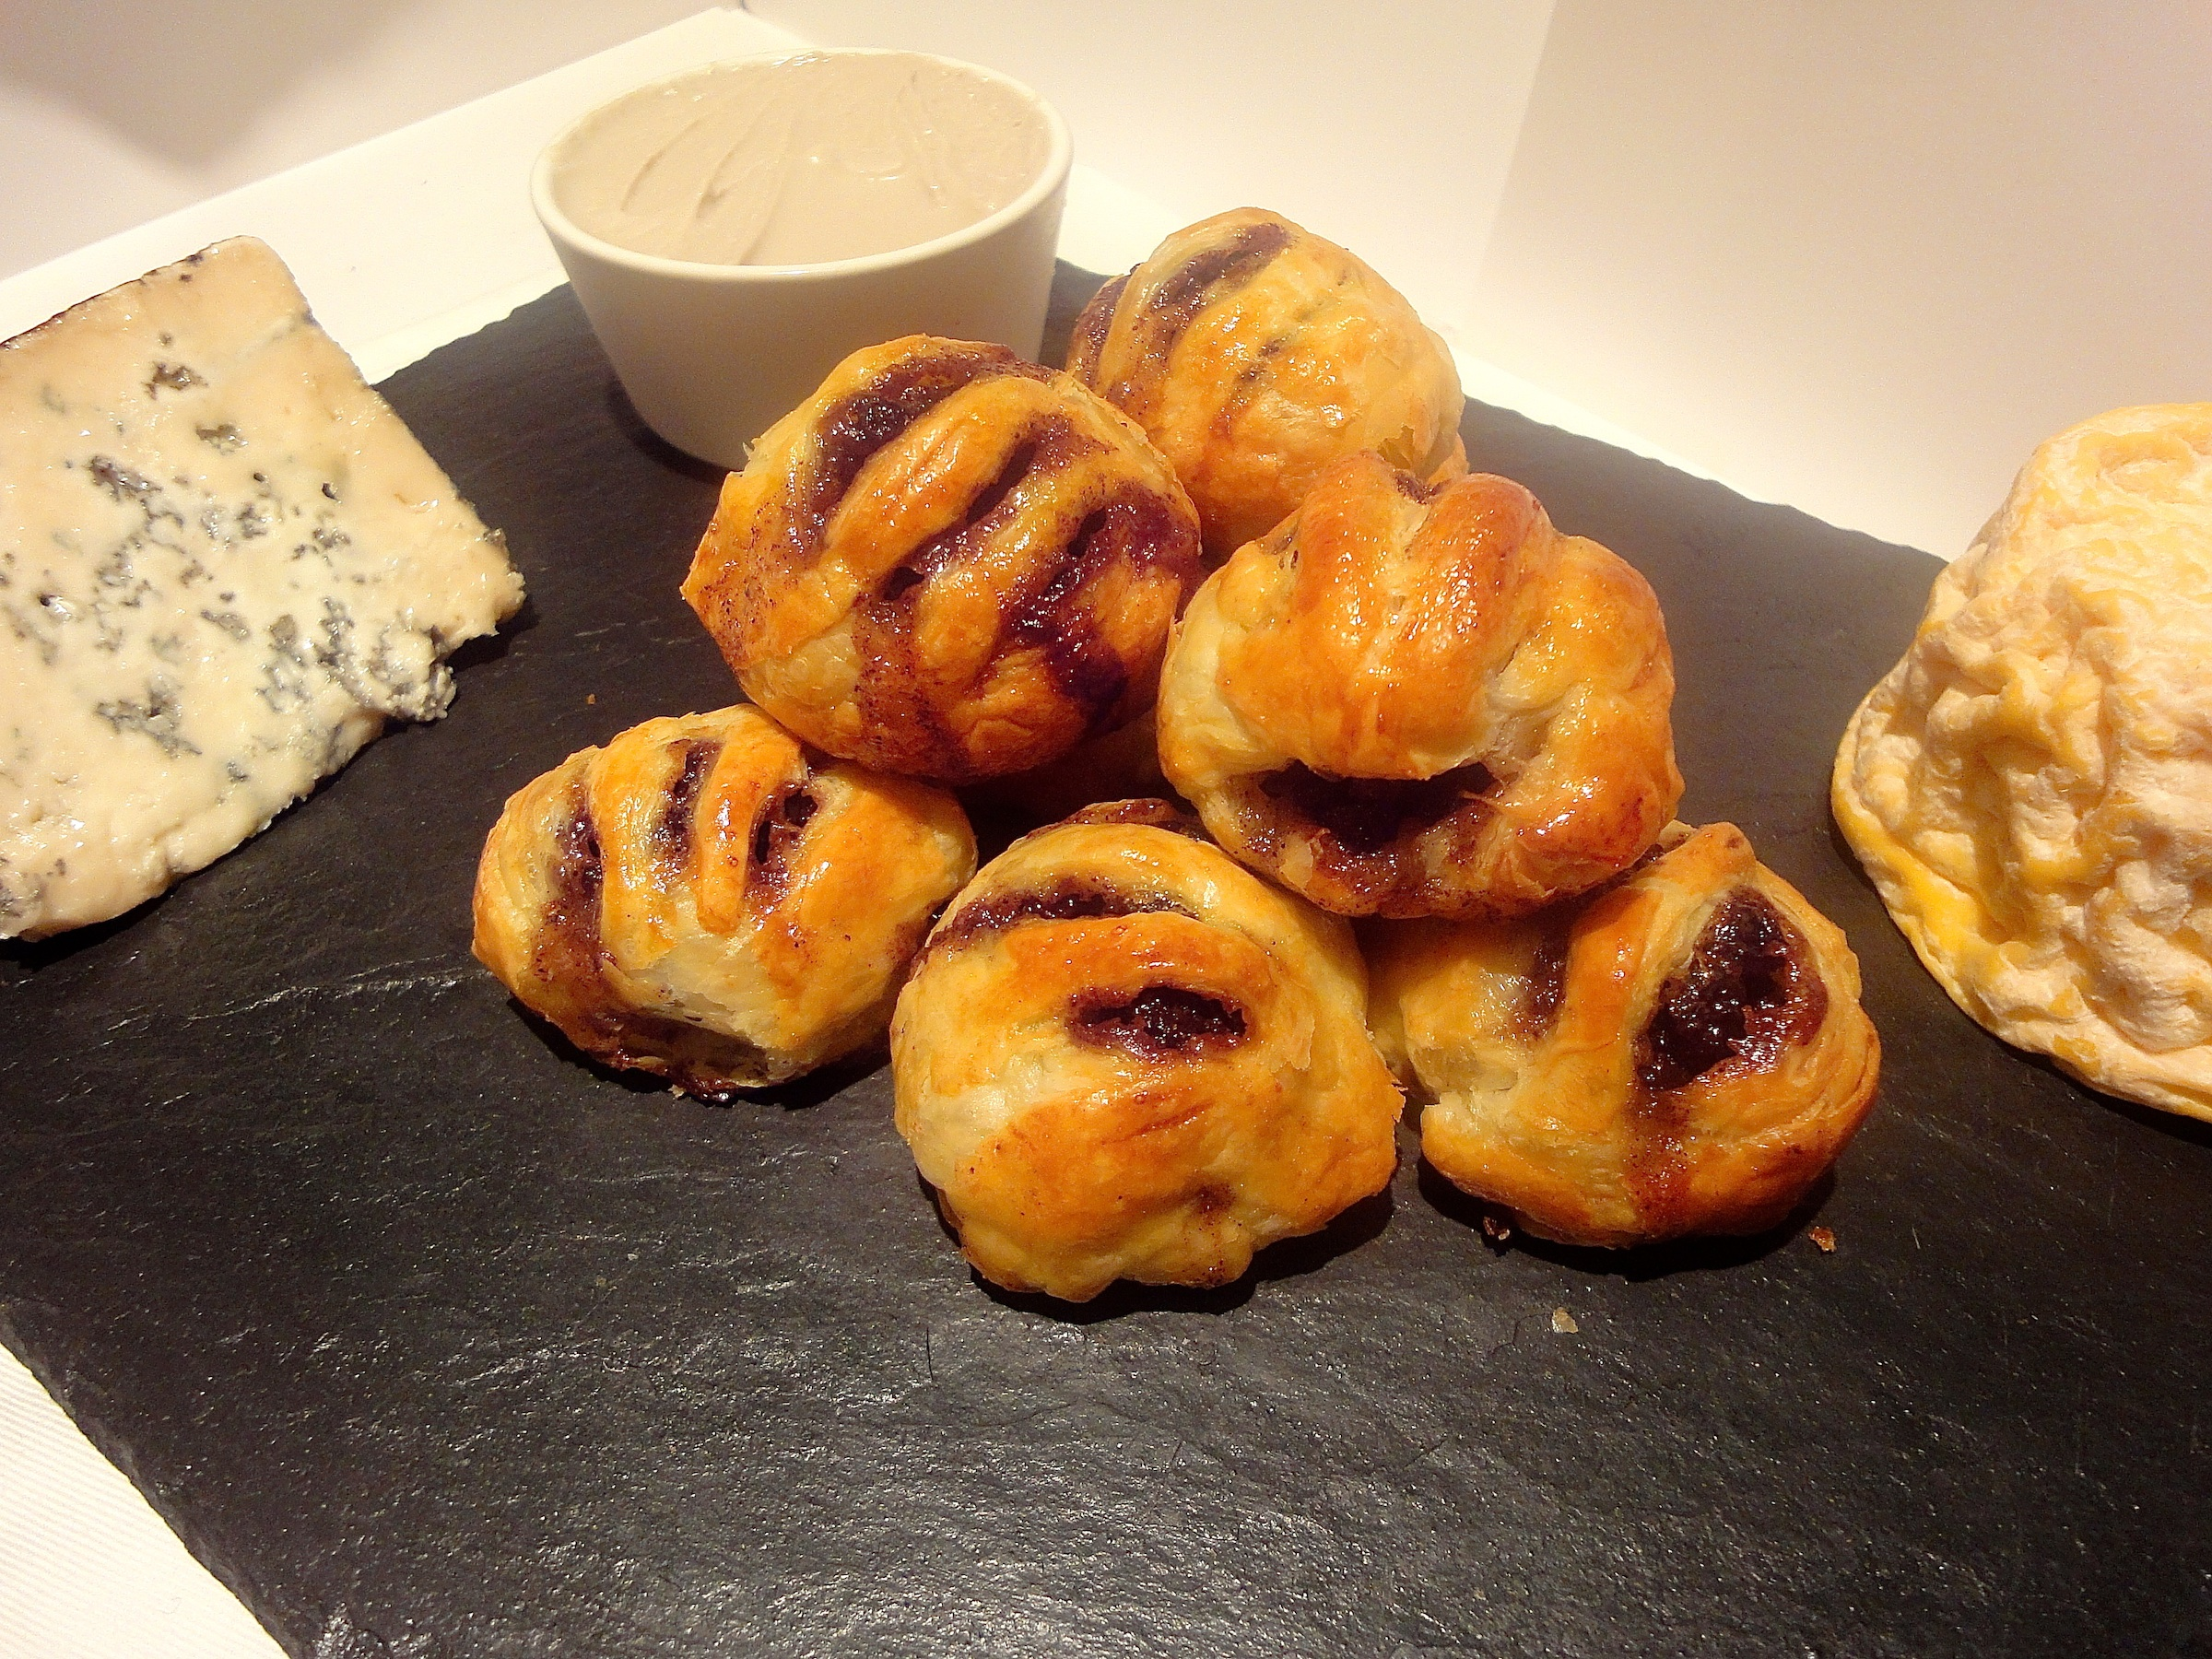 Eccles Cakes and Potted Stilton.